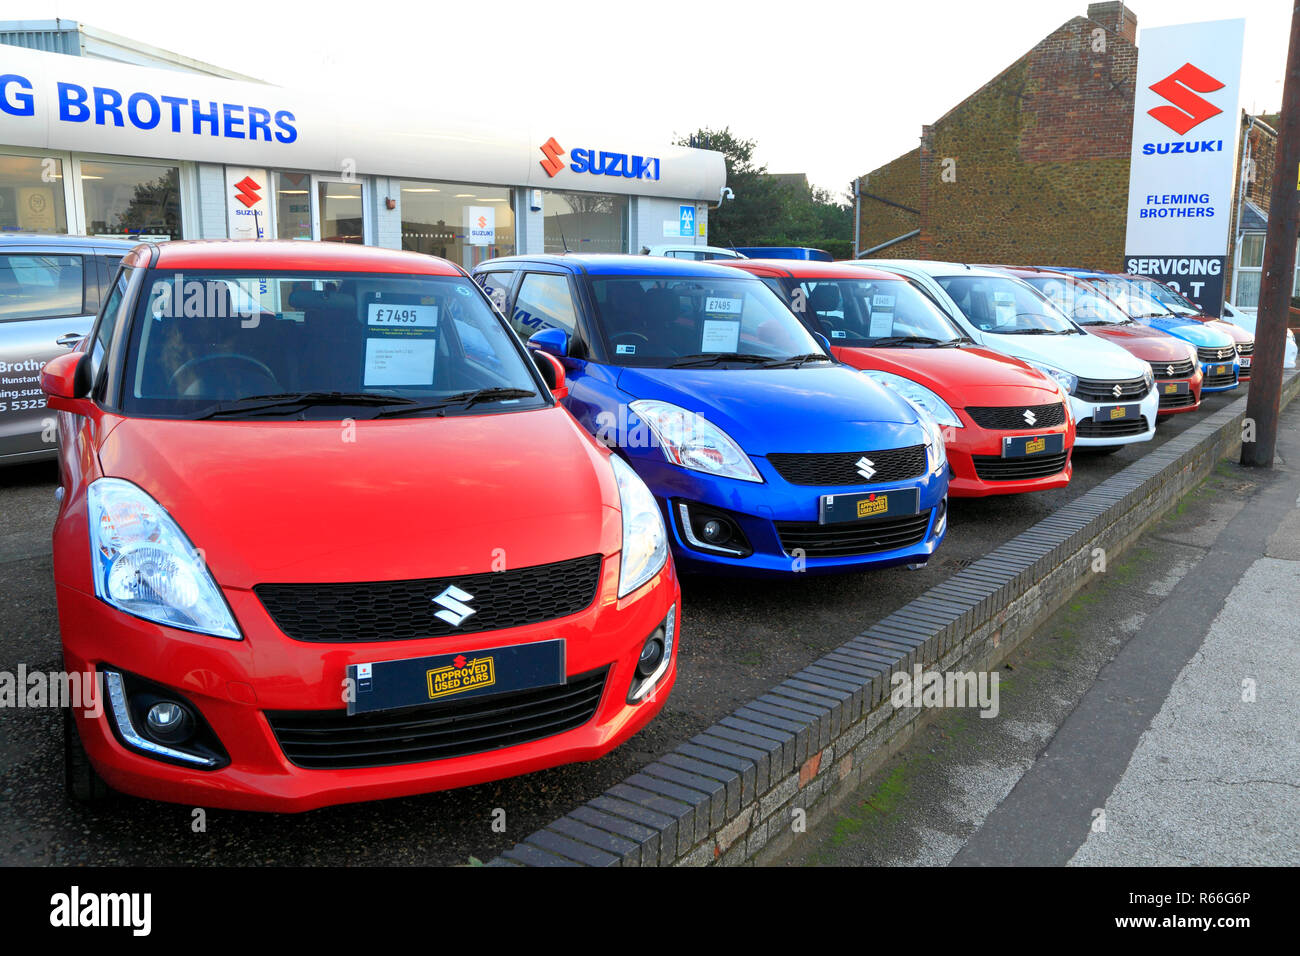 Suzuki Car Dealers Stock Photos & Suzuki Car Dealers Stock